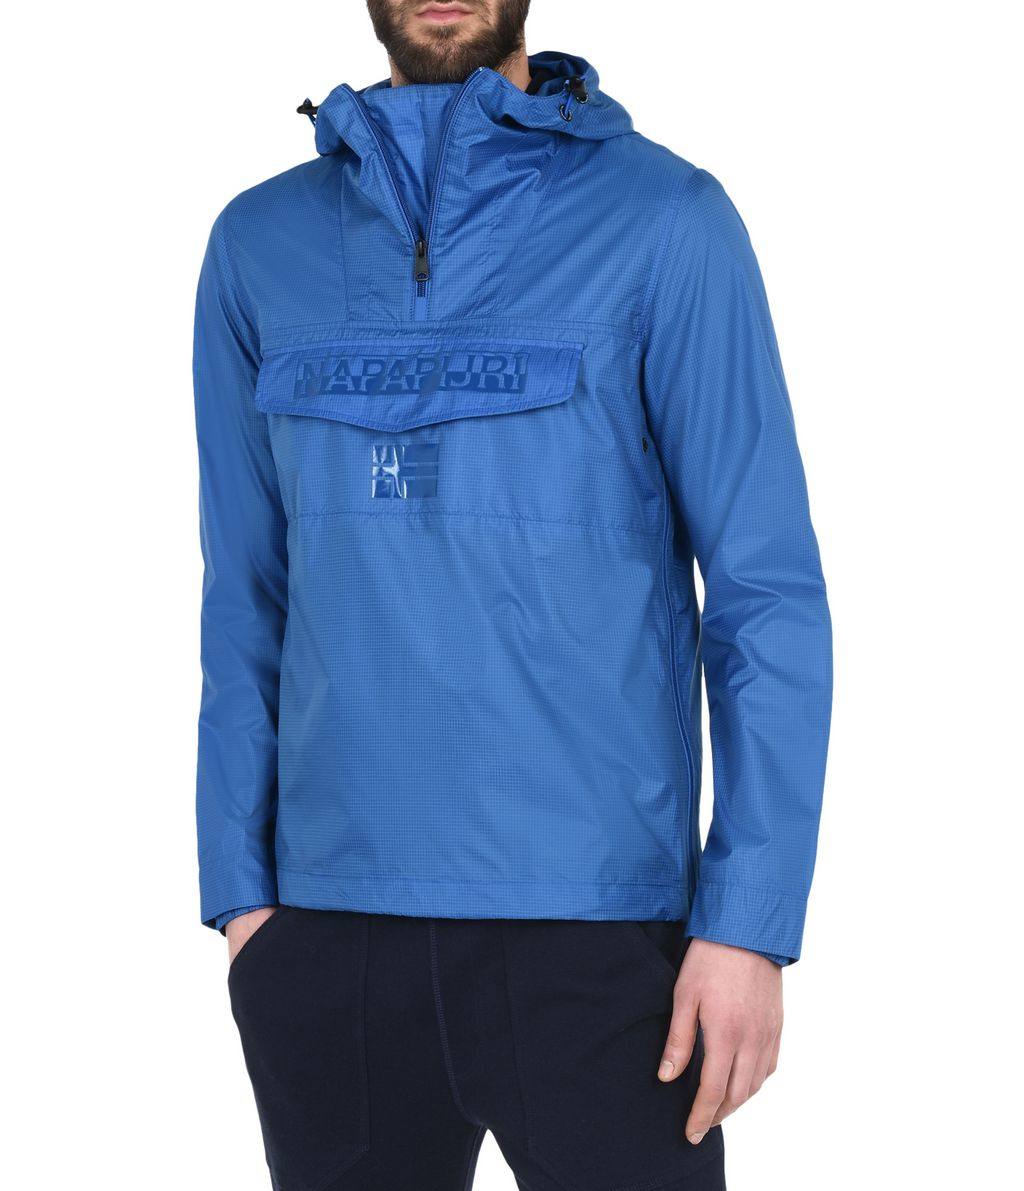 Napapijri jackets for men, winter coats, anoraks